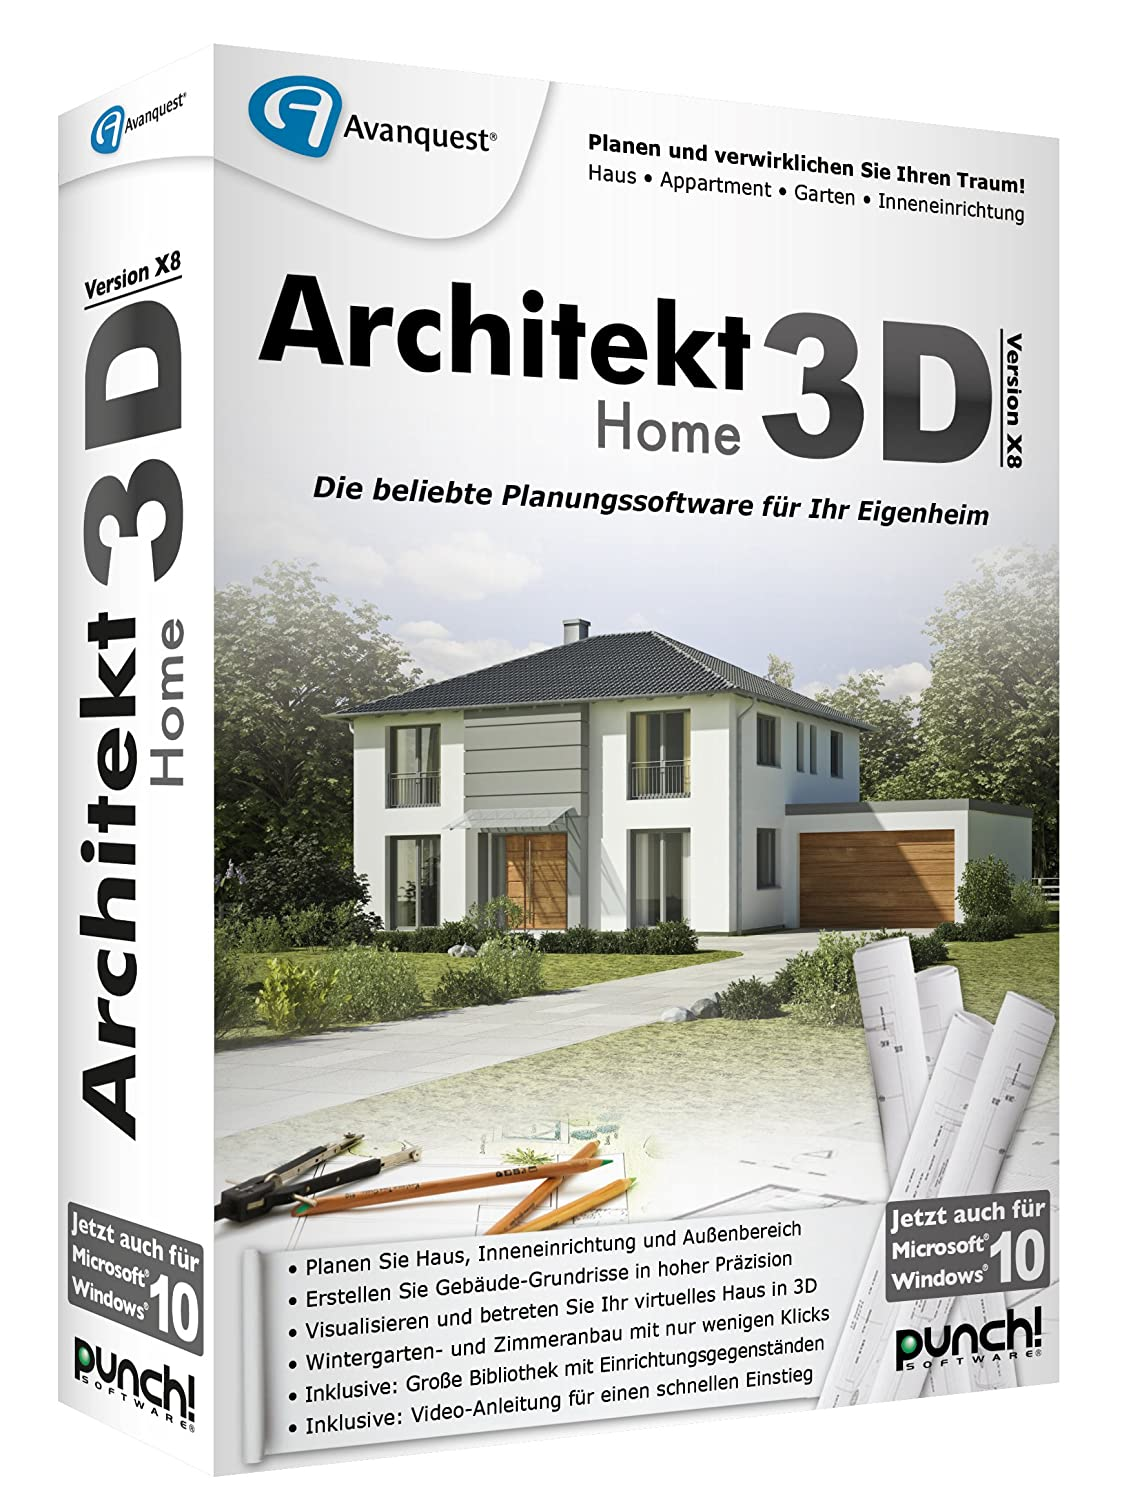 Architekt 3D X8 Home: Amazon.de: Software